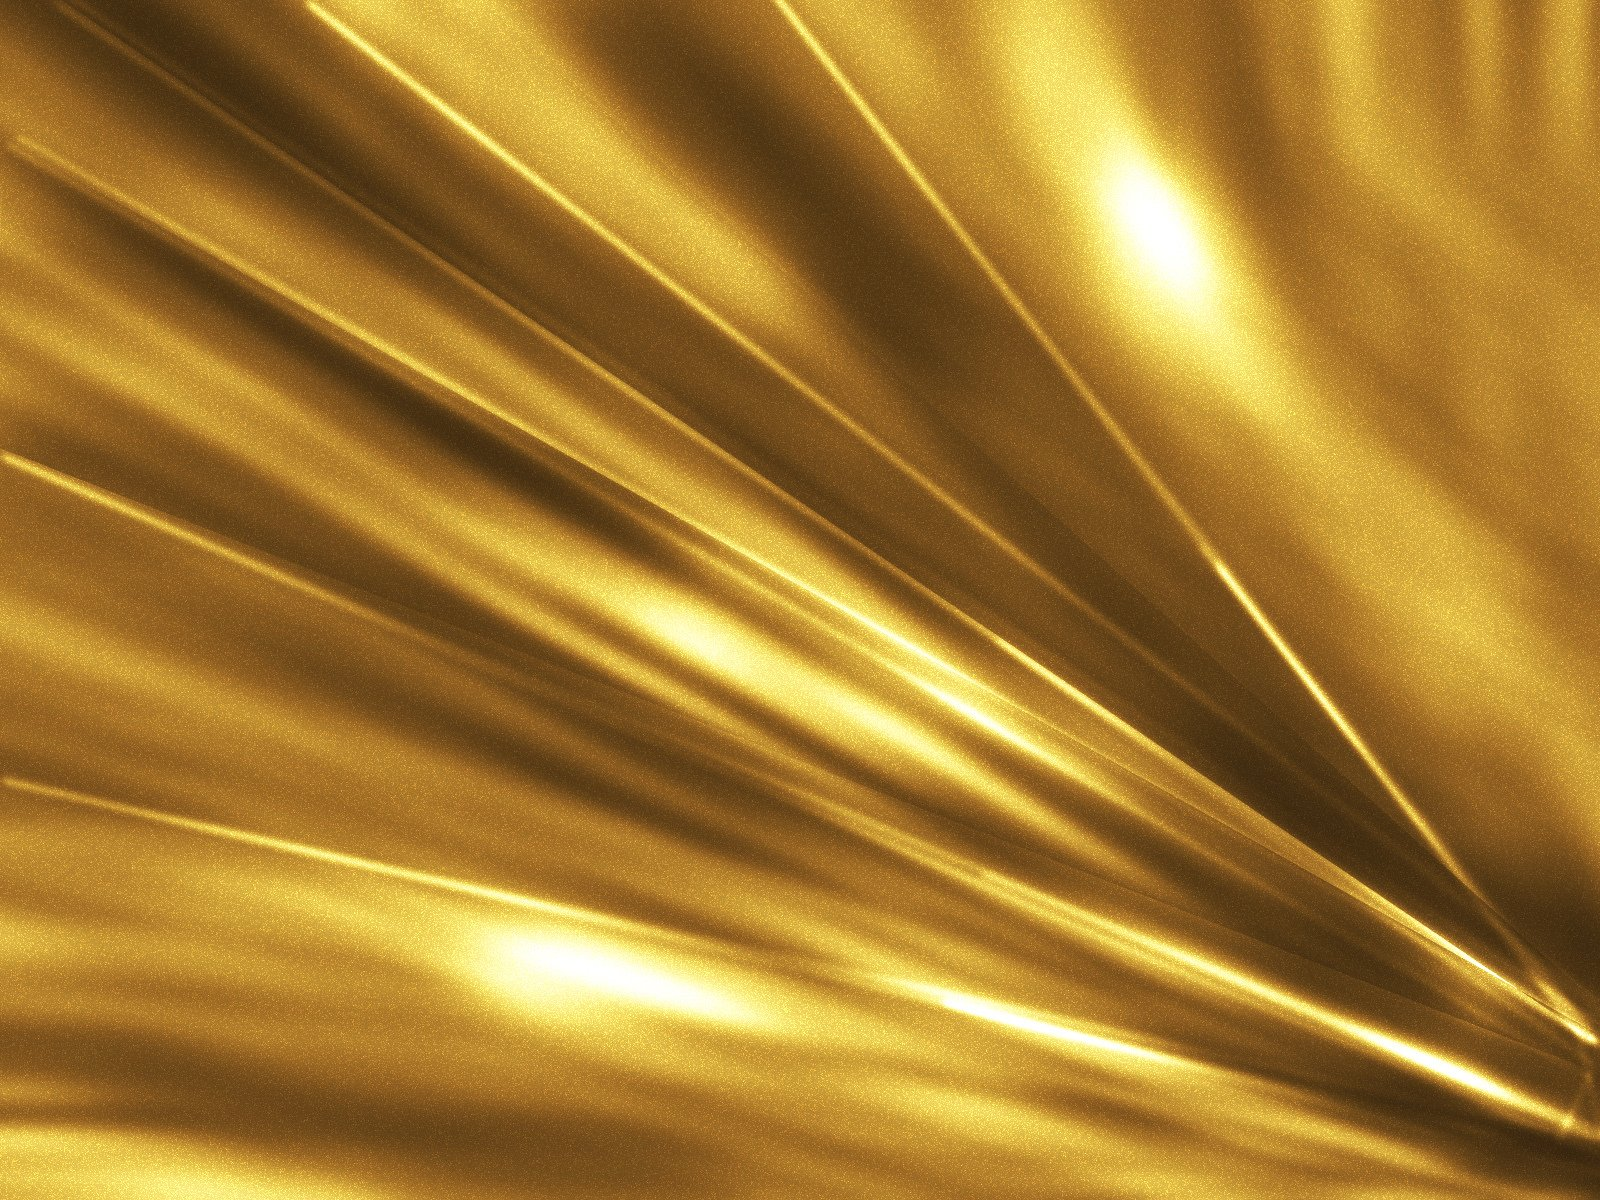 49 gold wallpaper images on wallpapersafari gold wallpaper images on wallpapersafari